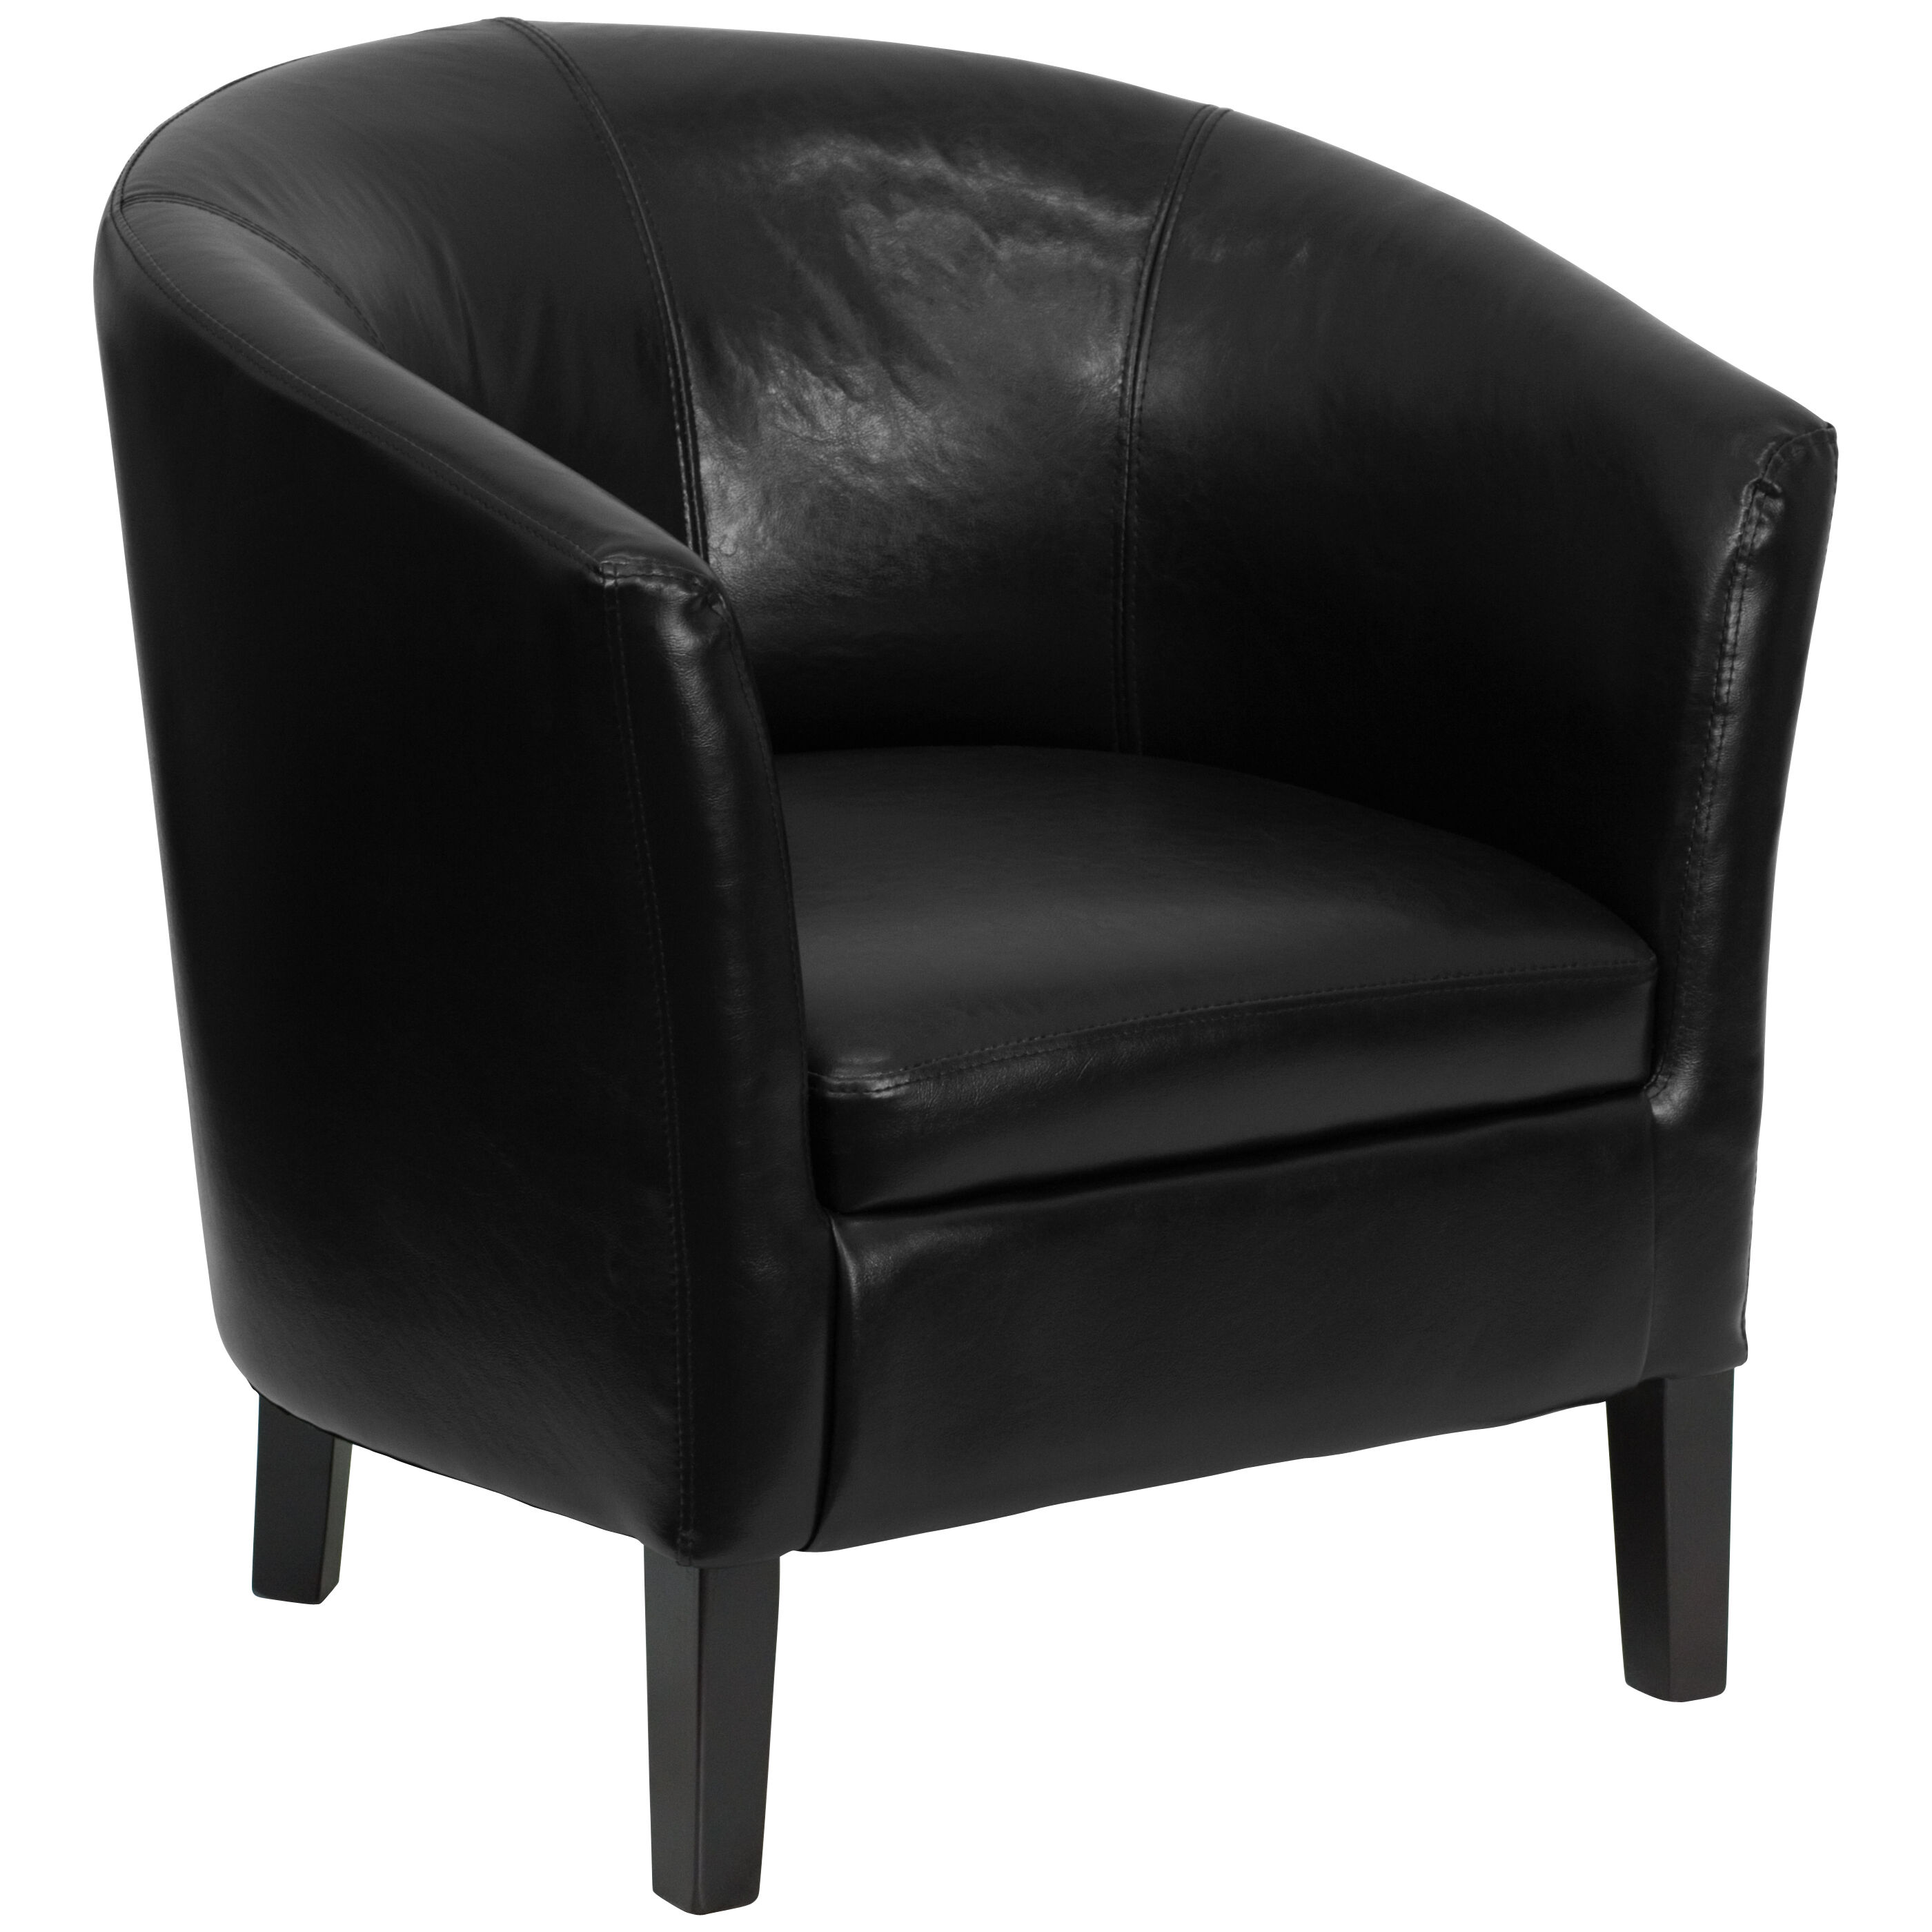 Black Barrel Chair Black Leather Chair Go S 11 Bk Barrel Gg Bizchair